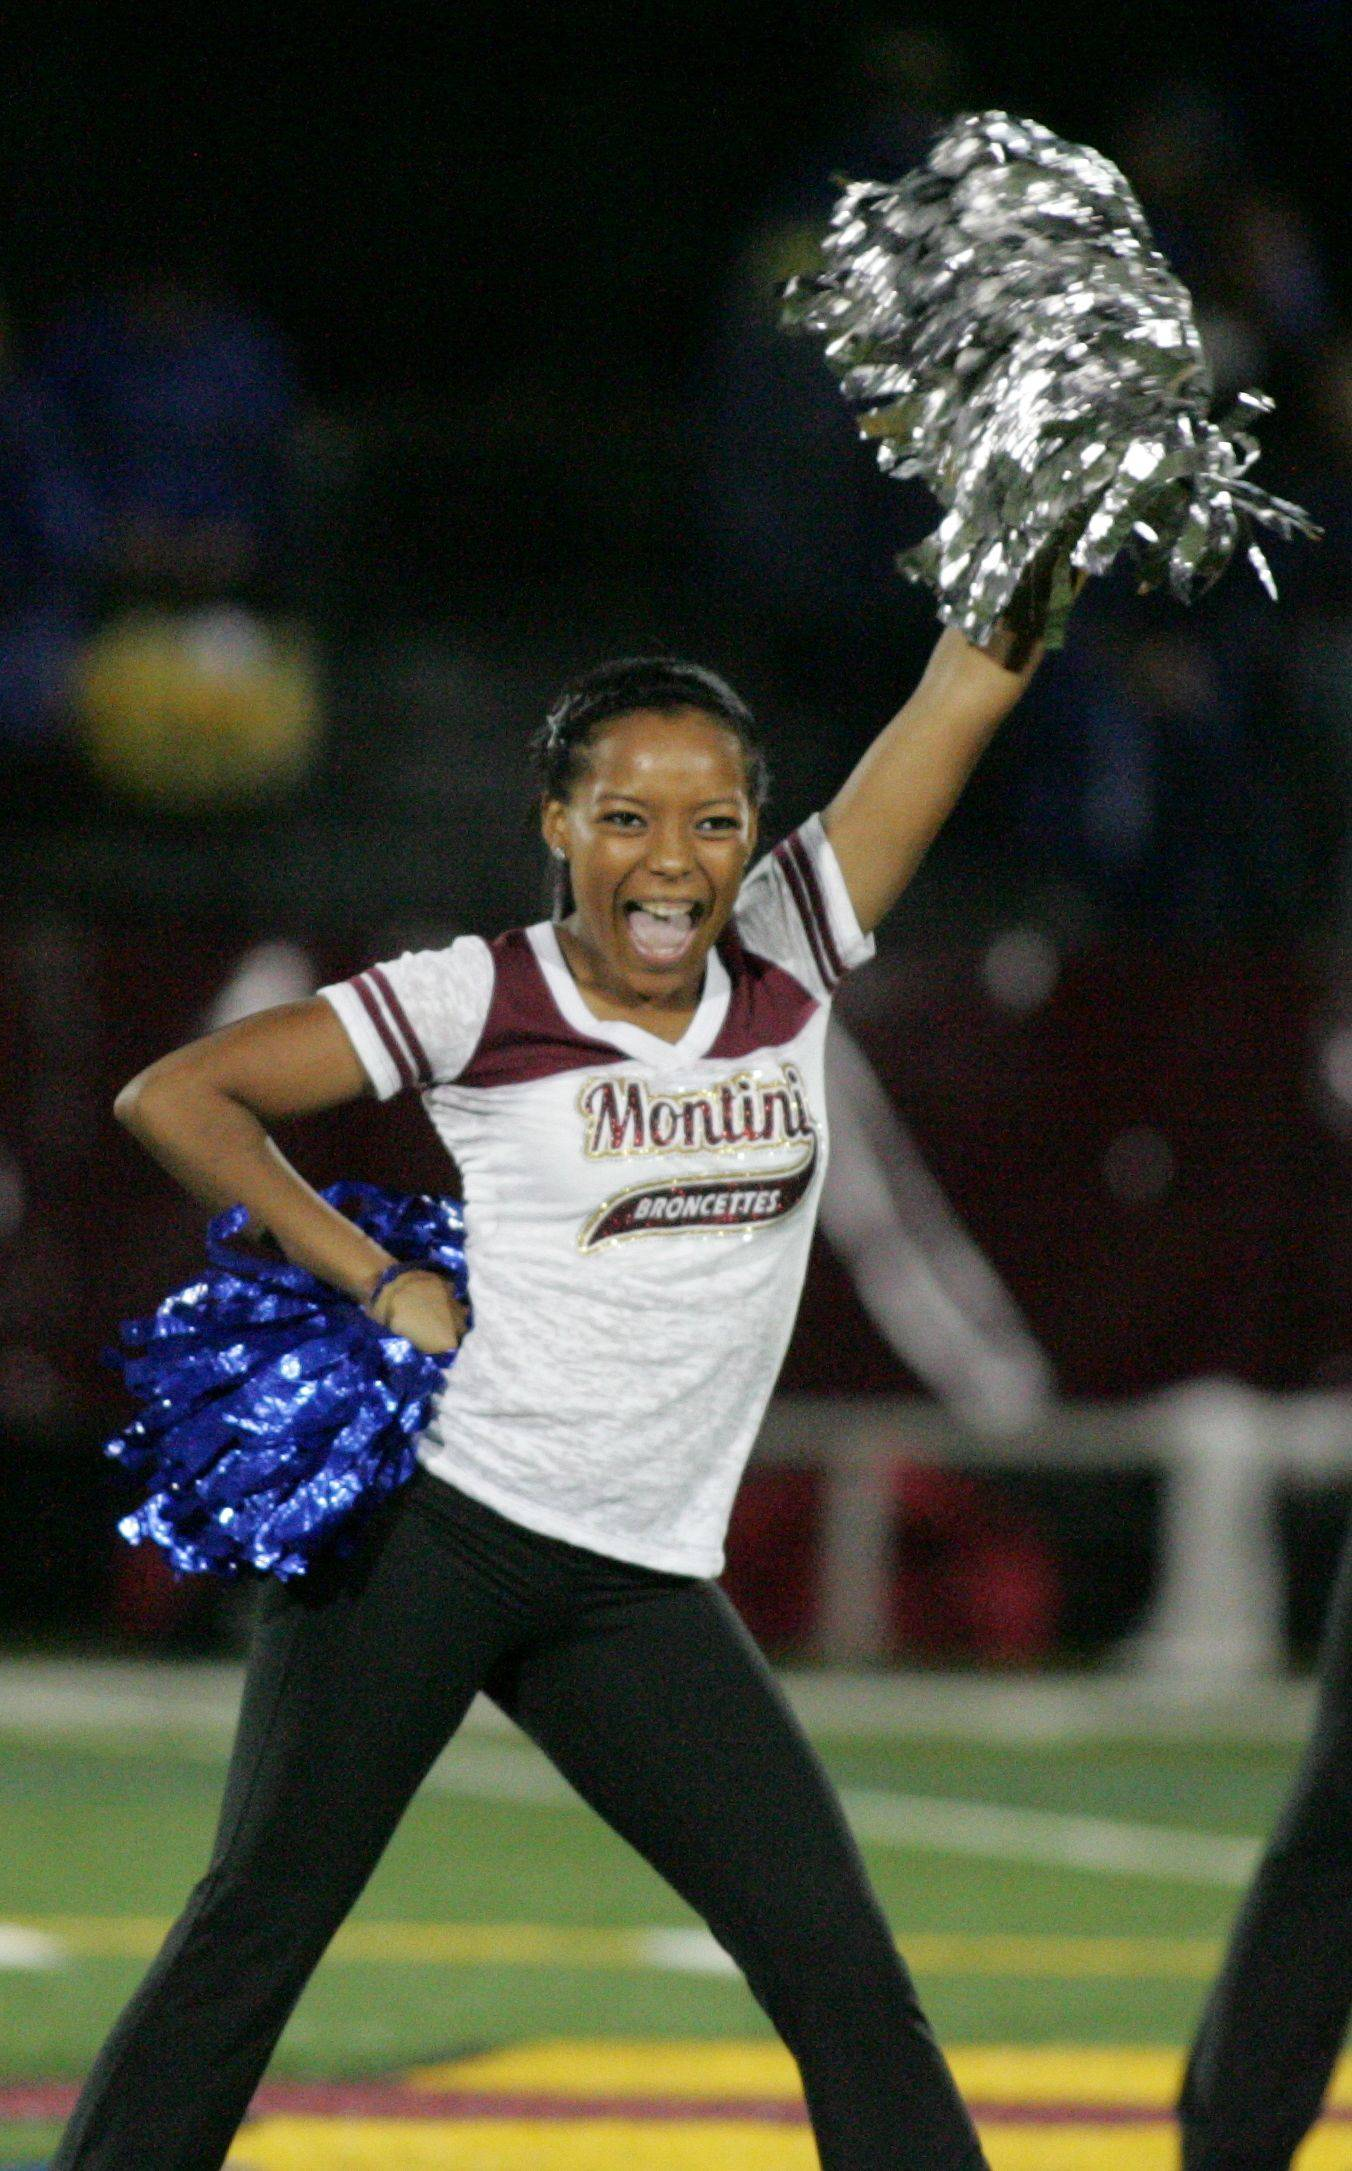 Week 3 - Photos from the Marmion at Montini football game on September 9th.